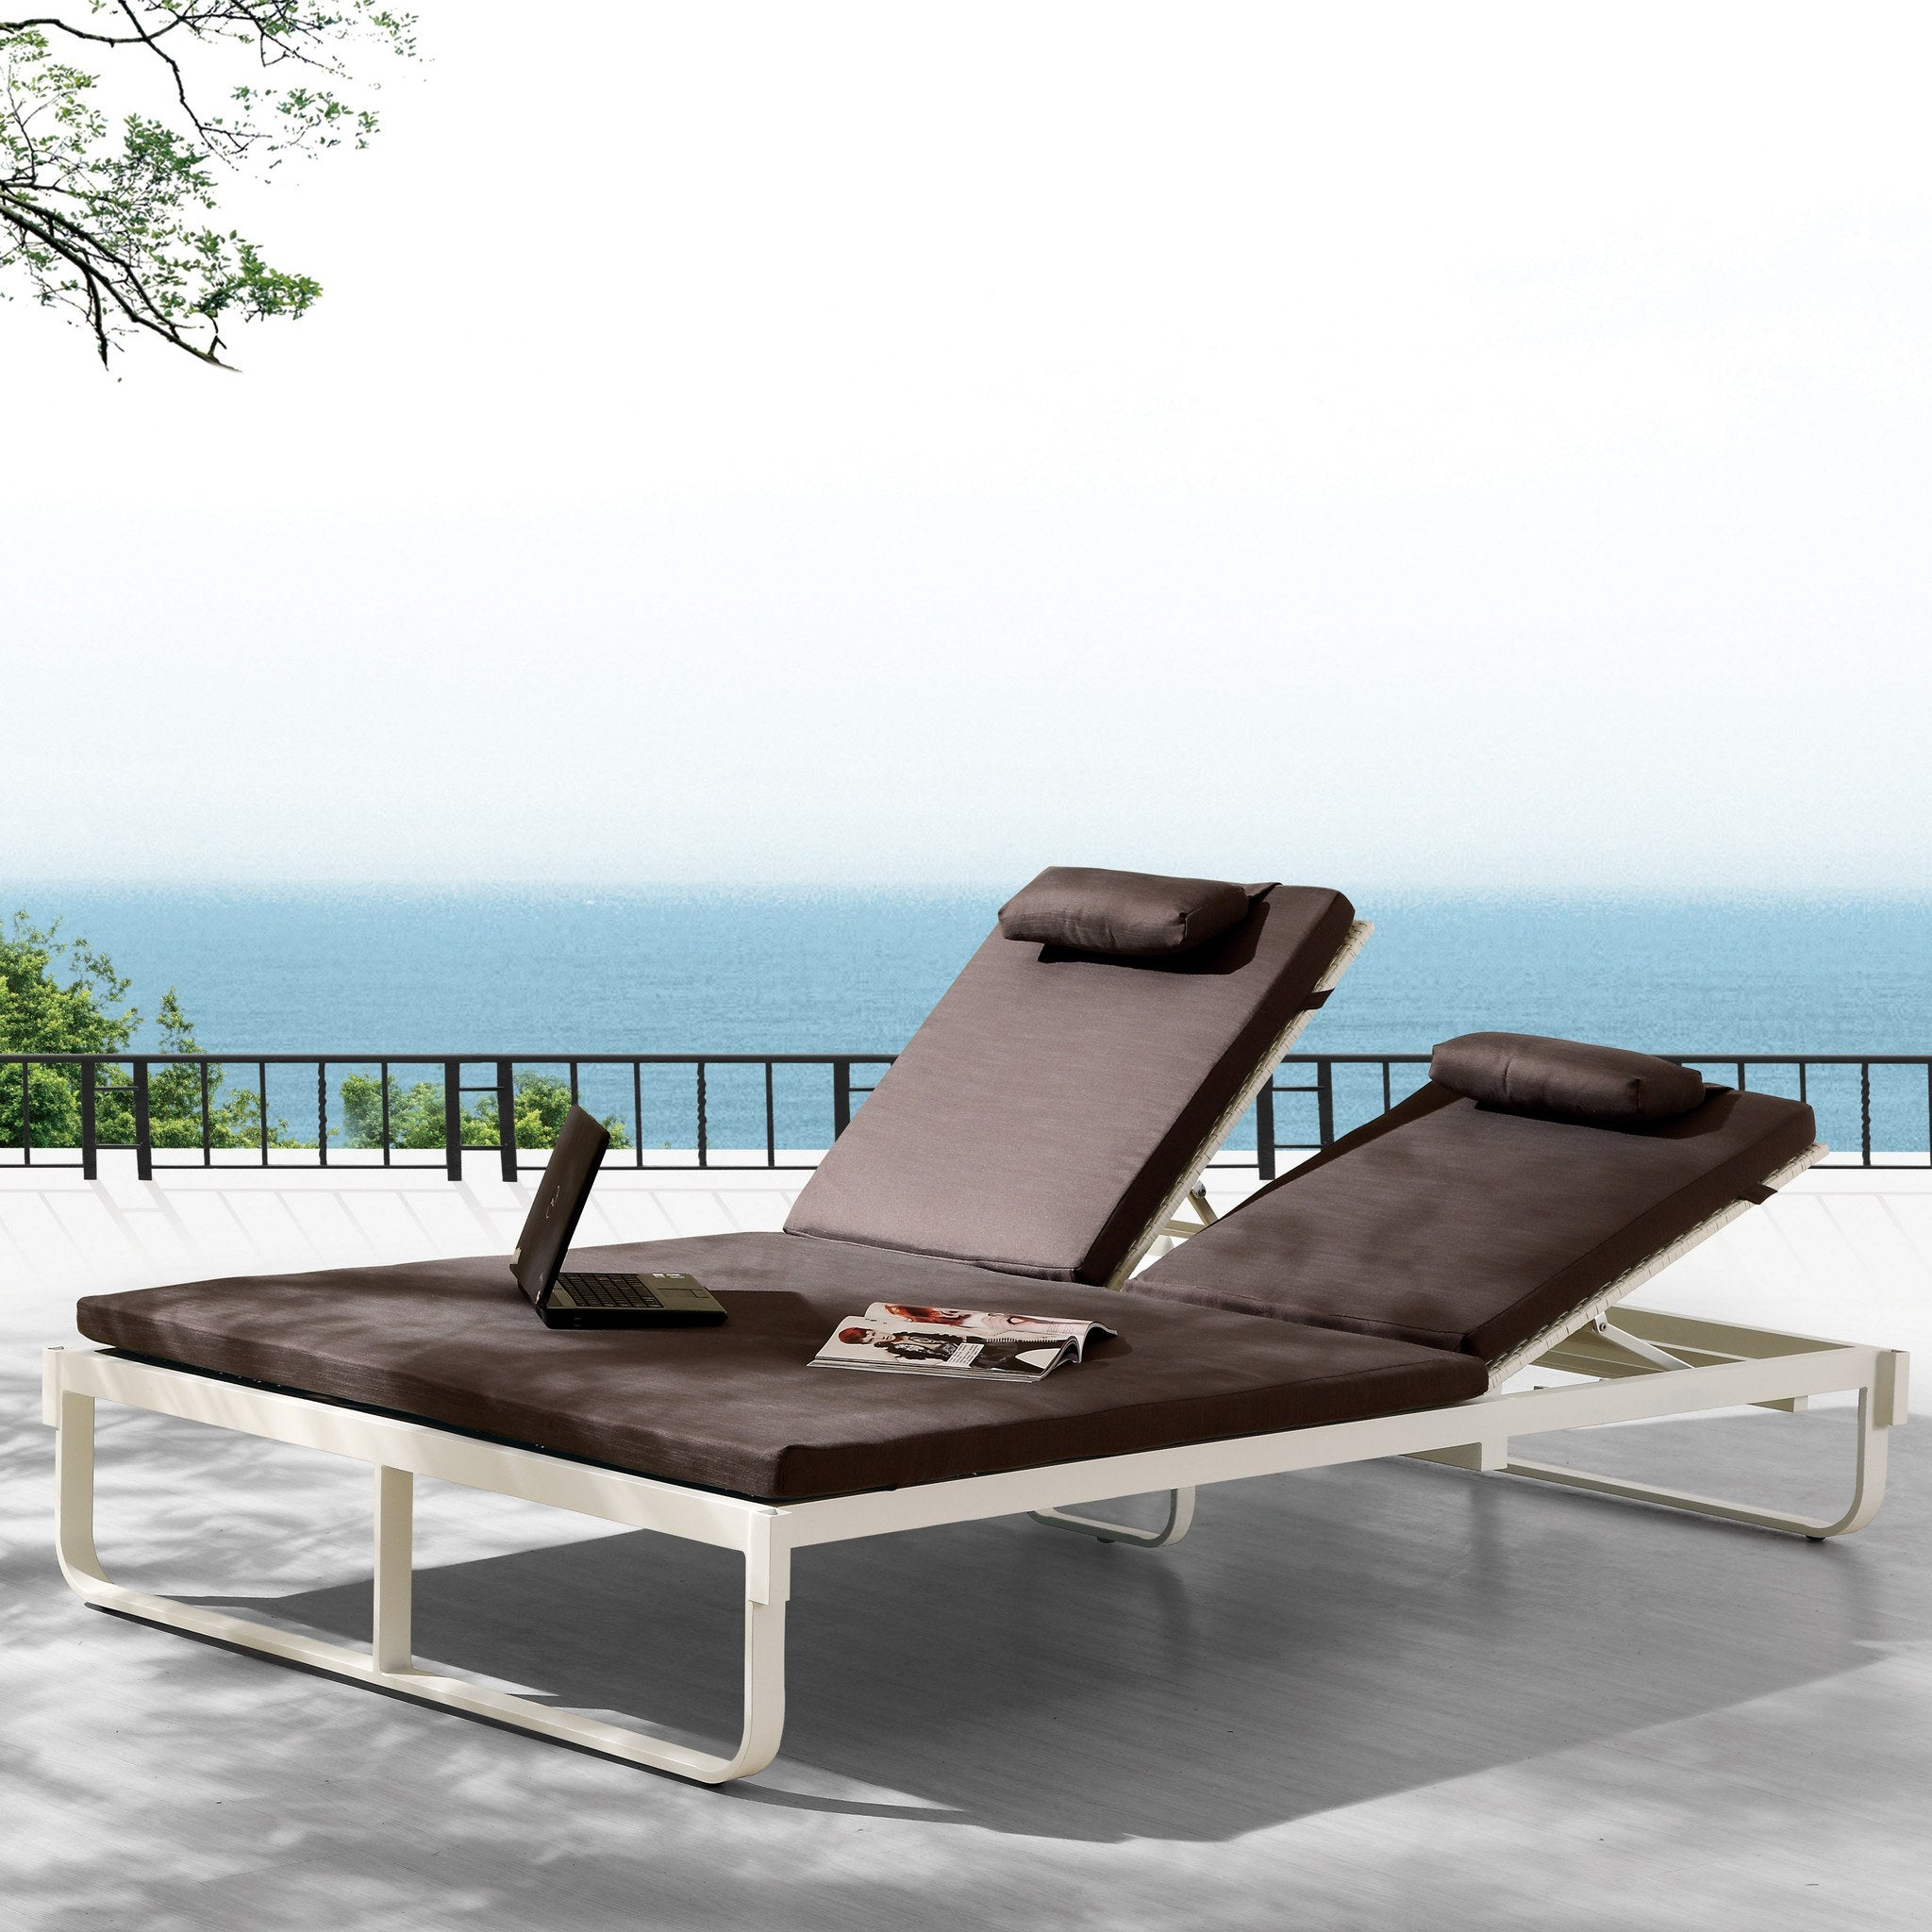 Contract Quality Outdoor Double Chaise Lounge Seating